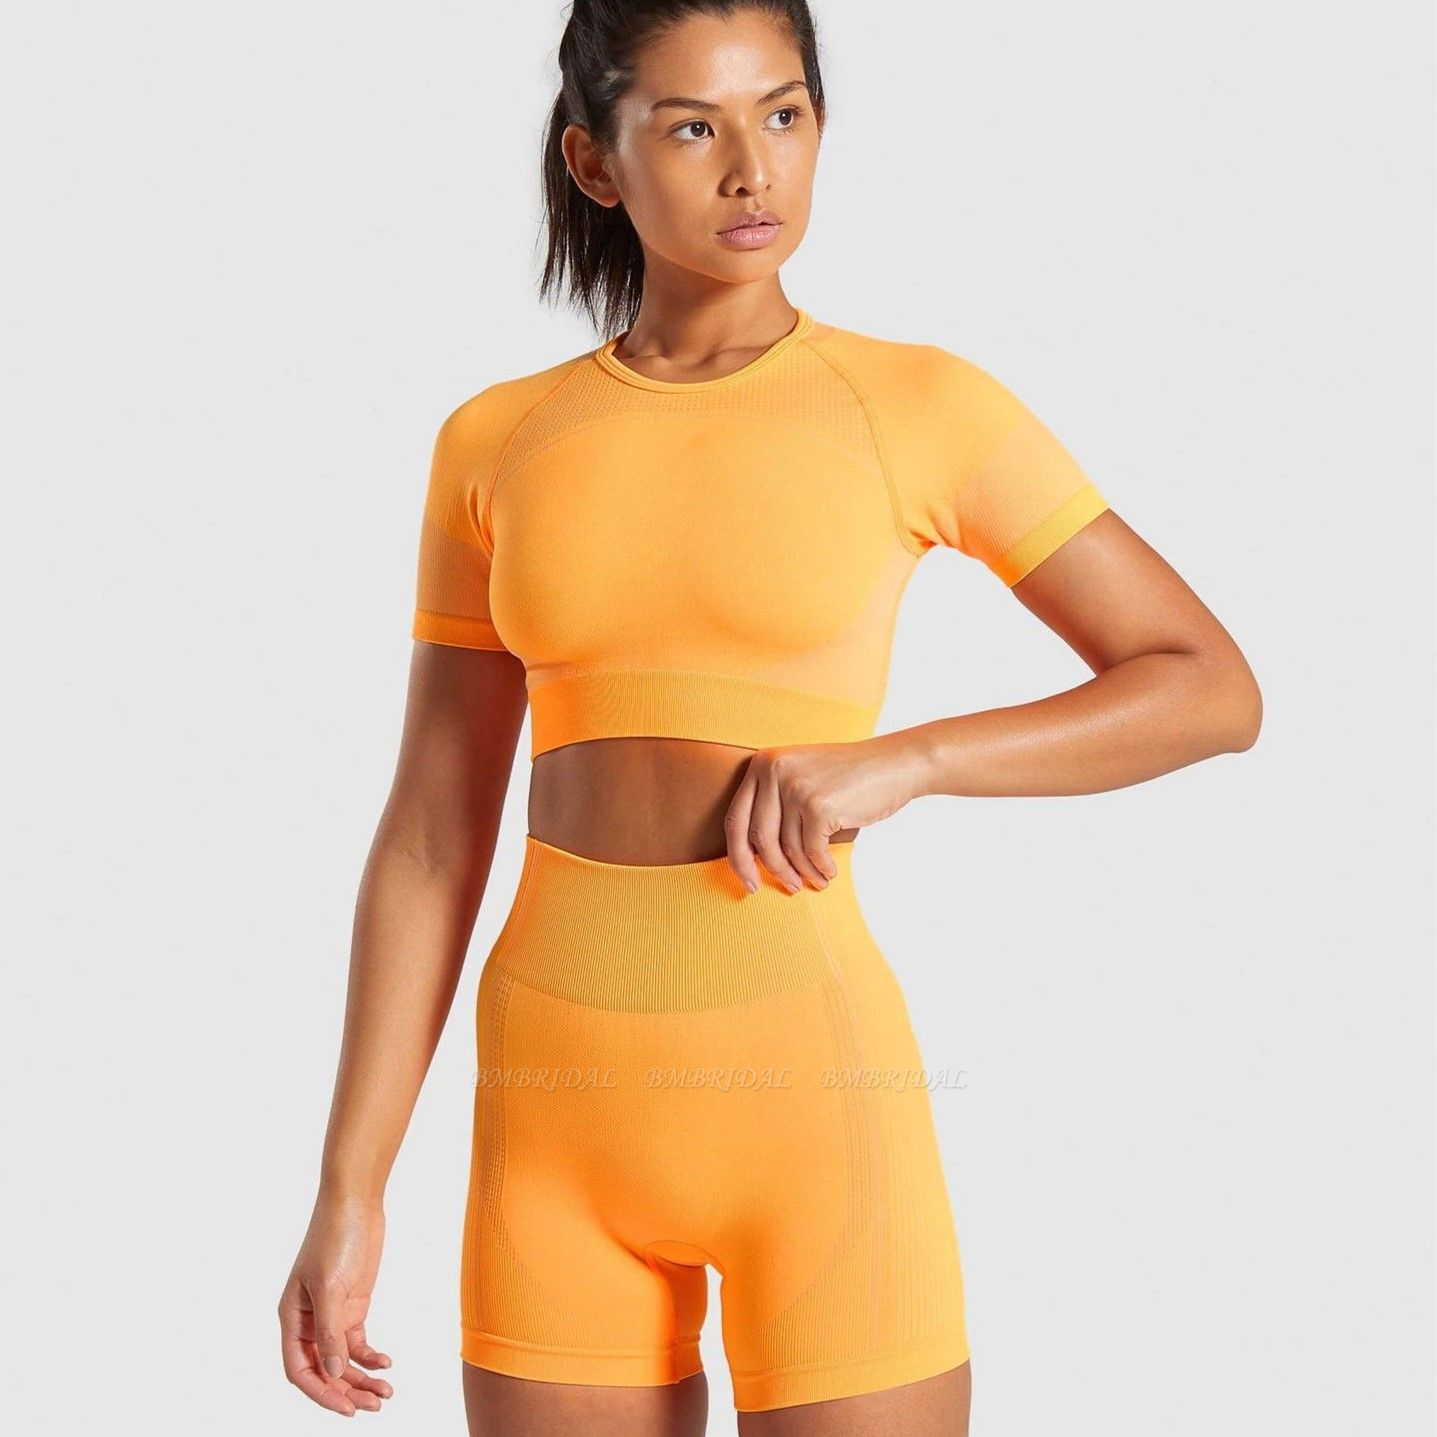 Sexy Women 2PCS Yoga Set Female Short Sleeves Top Fitness Shorts Running Gym Sports Clothes Suit